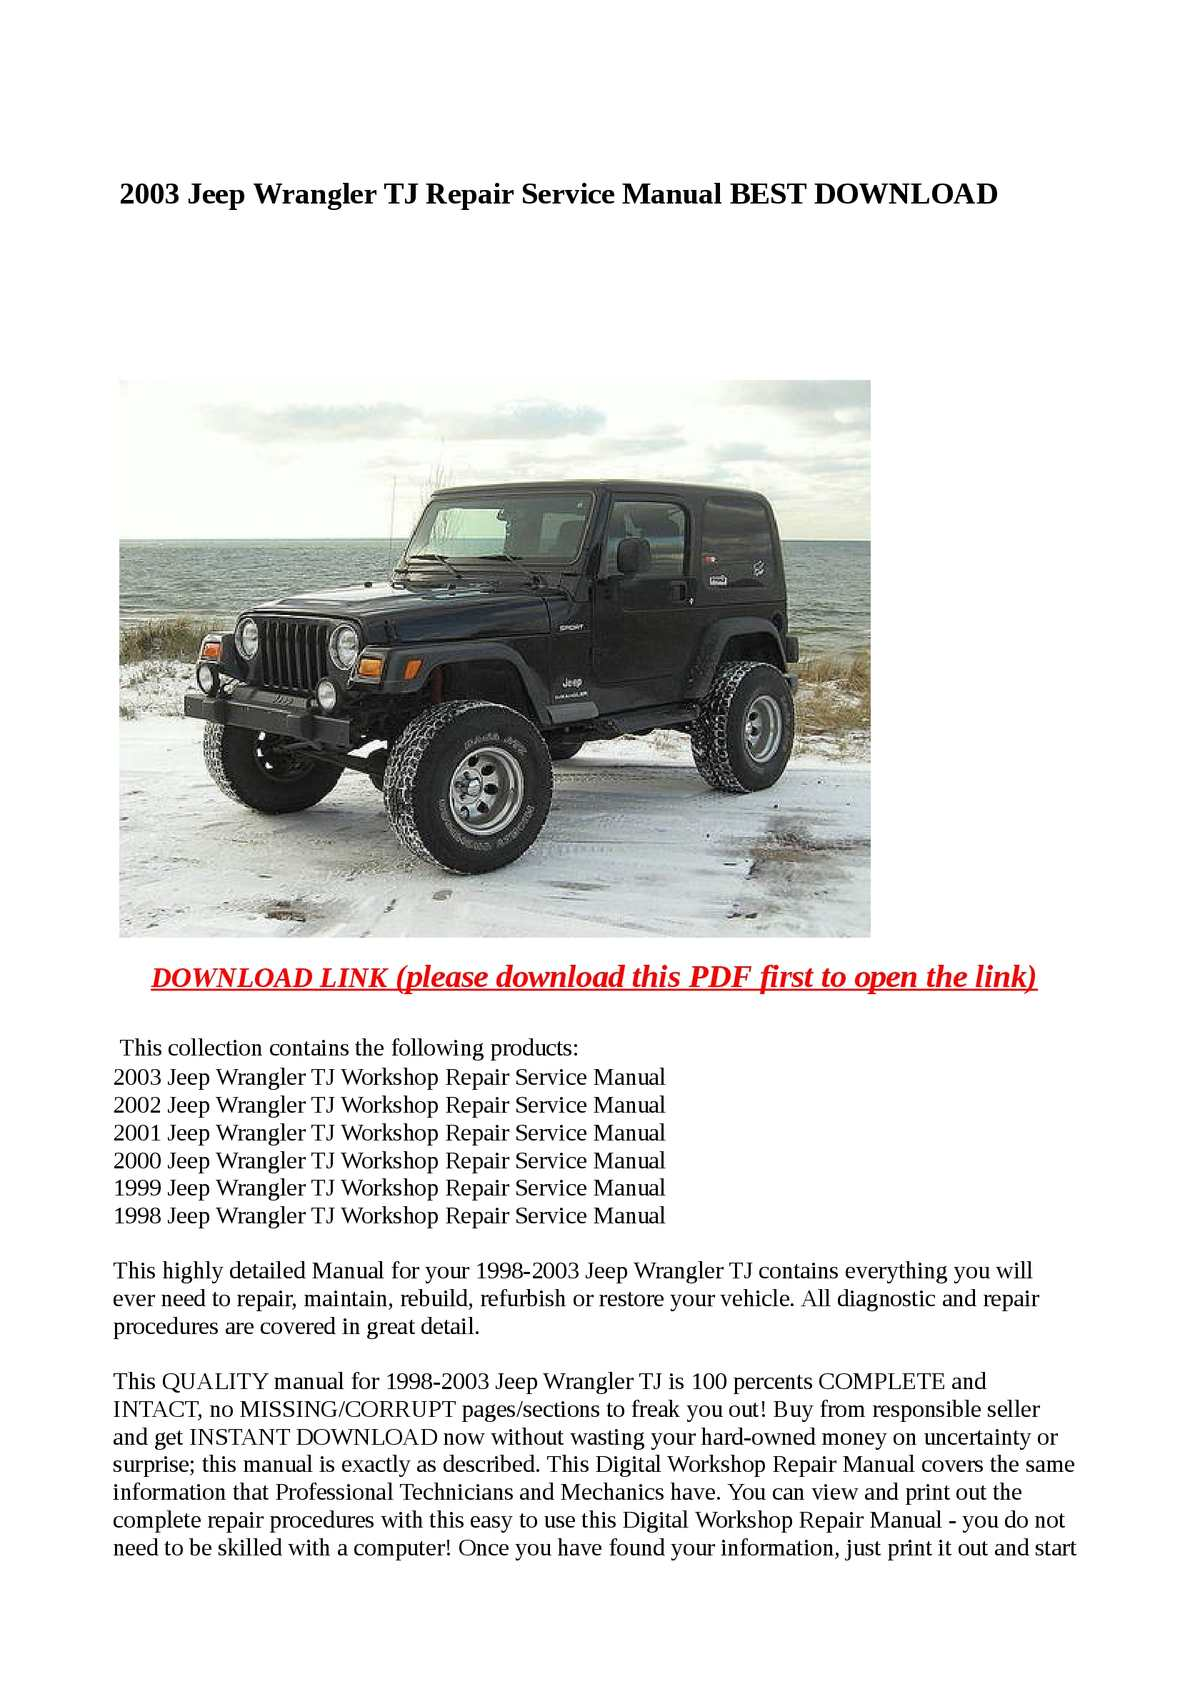 calam o 2003 jeep wrangler tj repair service manual best download rh  calameo com 2000 jeep wrangler service manual pdf Inside Jeep Wrangler  Manual